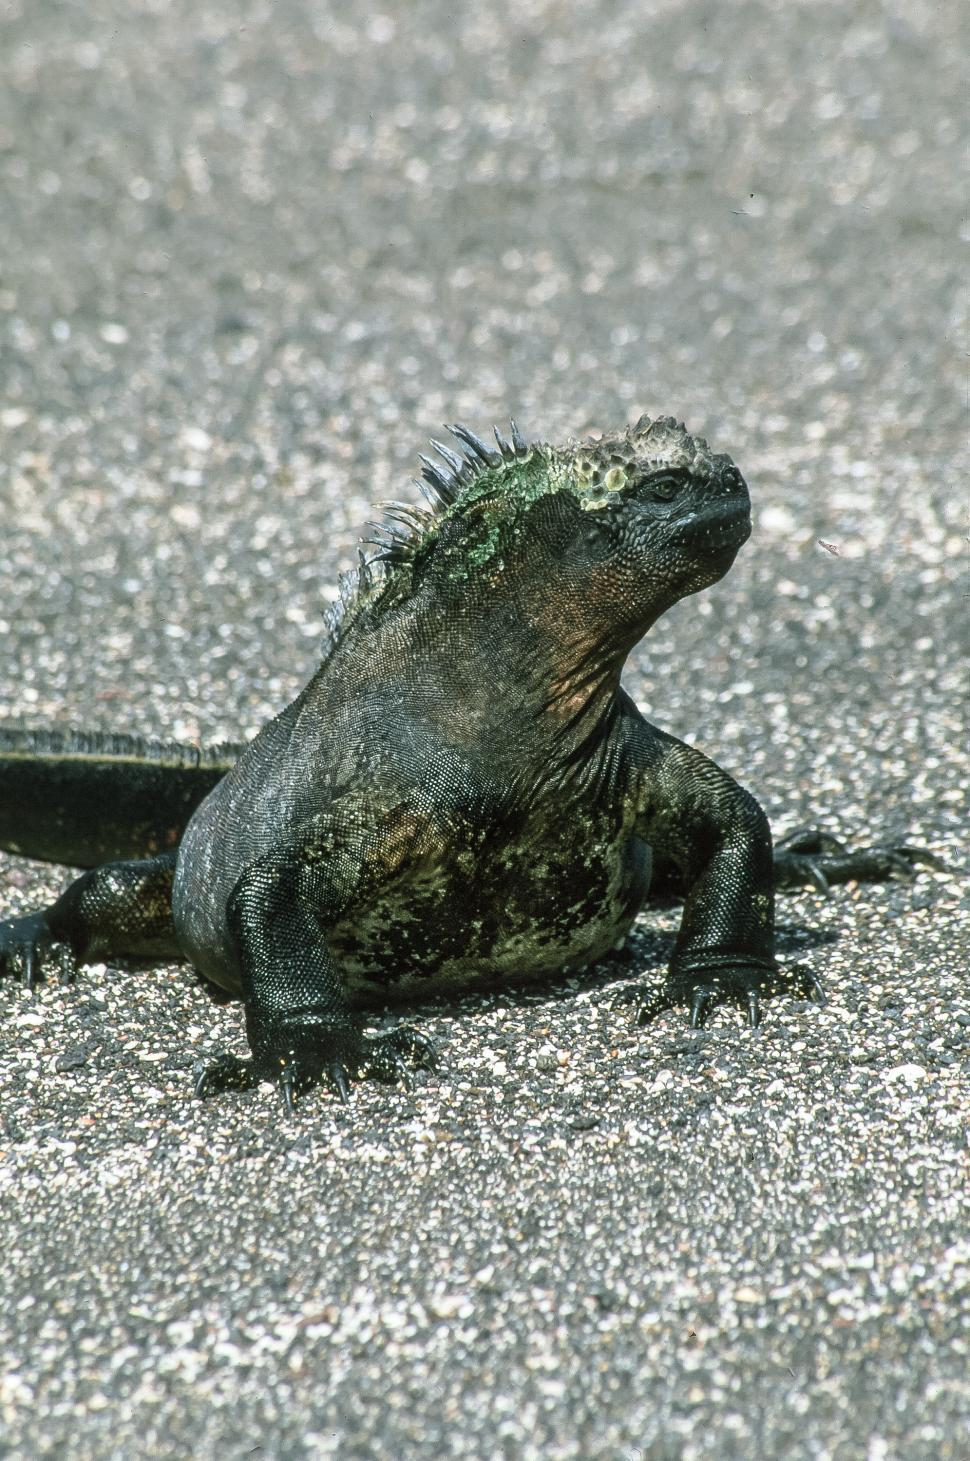 Free image of Iguana lizard in the Galapagos Islands